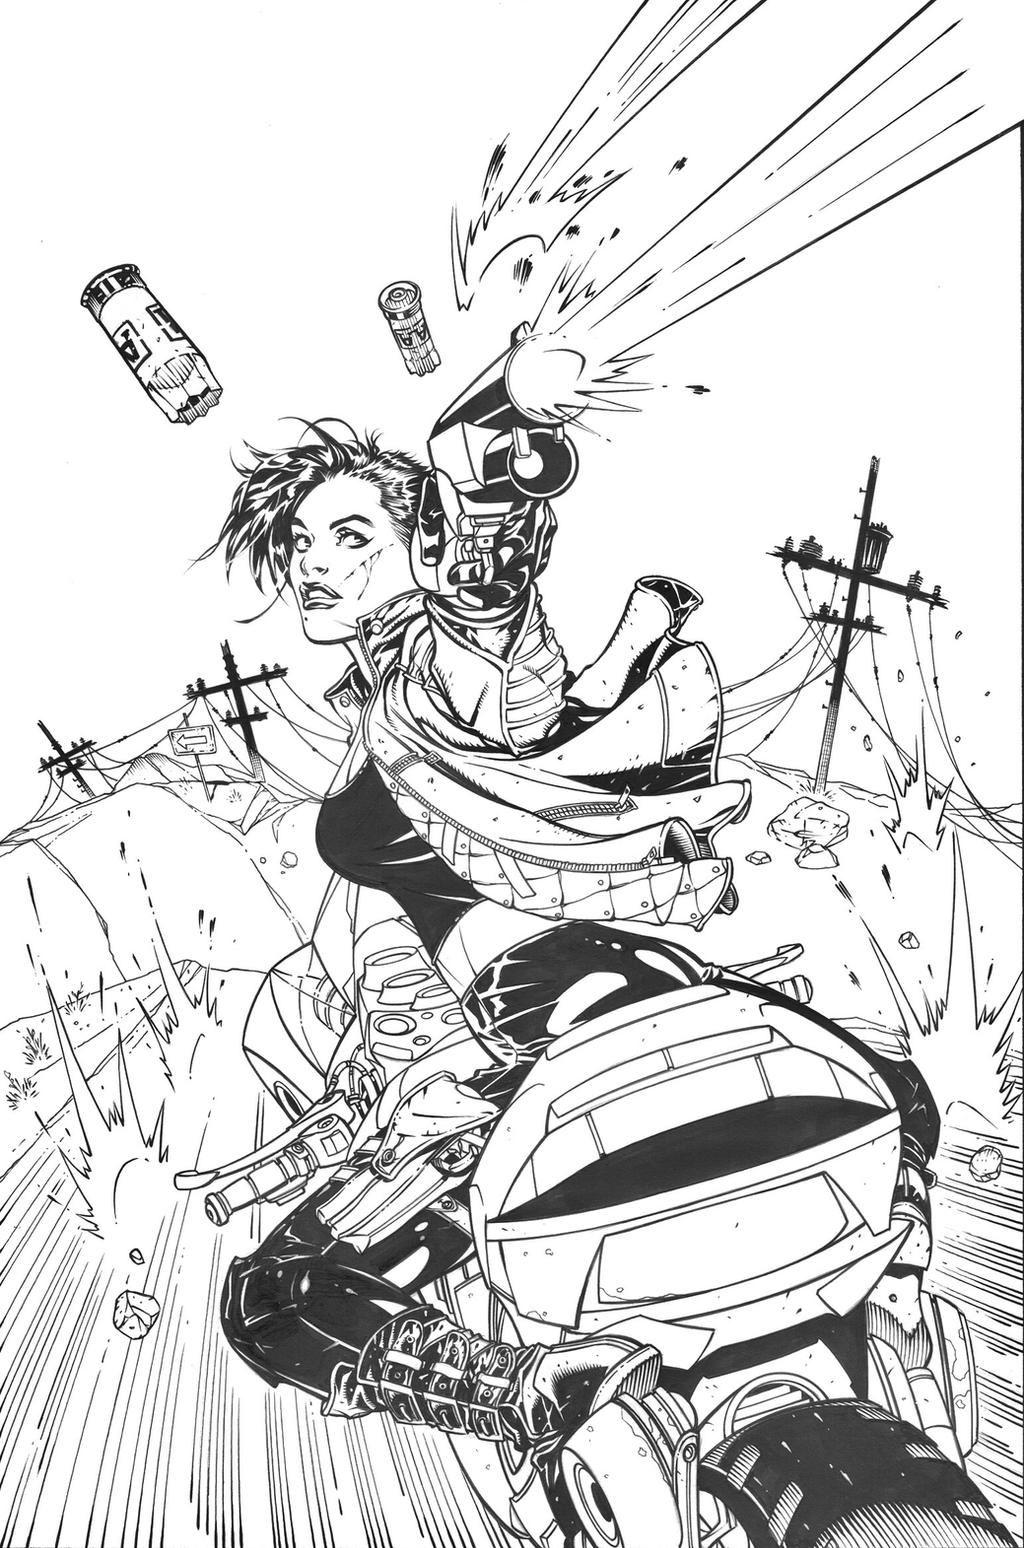 THE COURIER #4 Cover by DrewEdwardJohnson